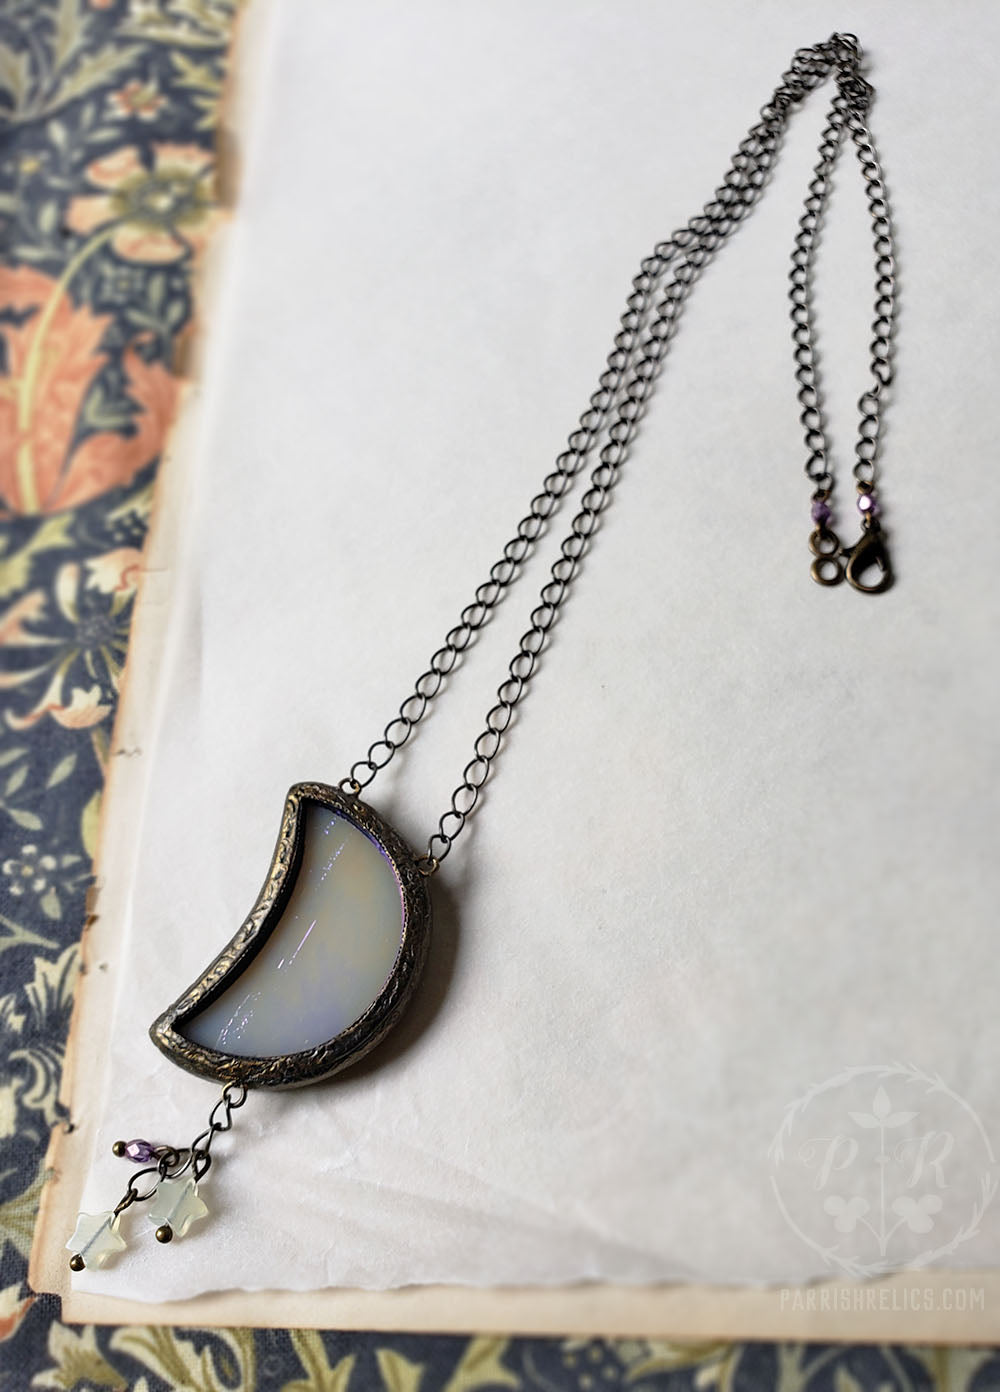 cb7465d5843dd a Summer Moon ~ Iridescent Stained Glass Amulet